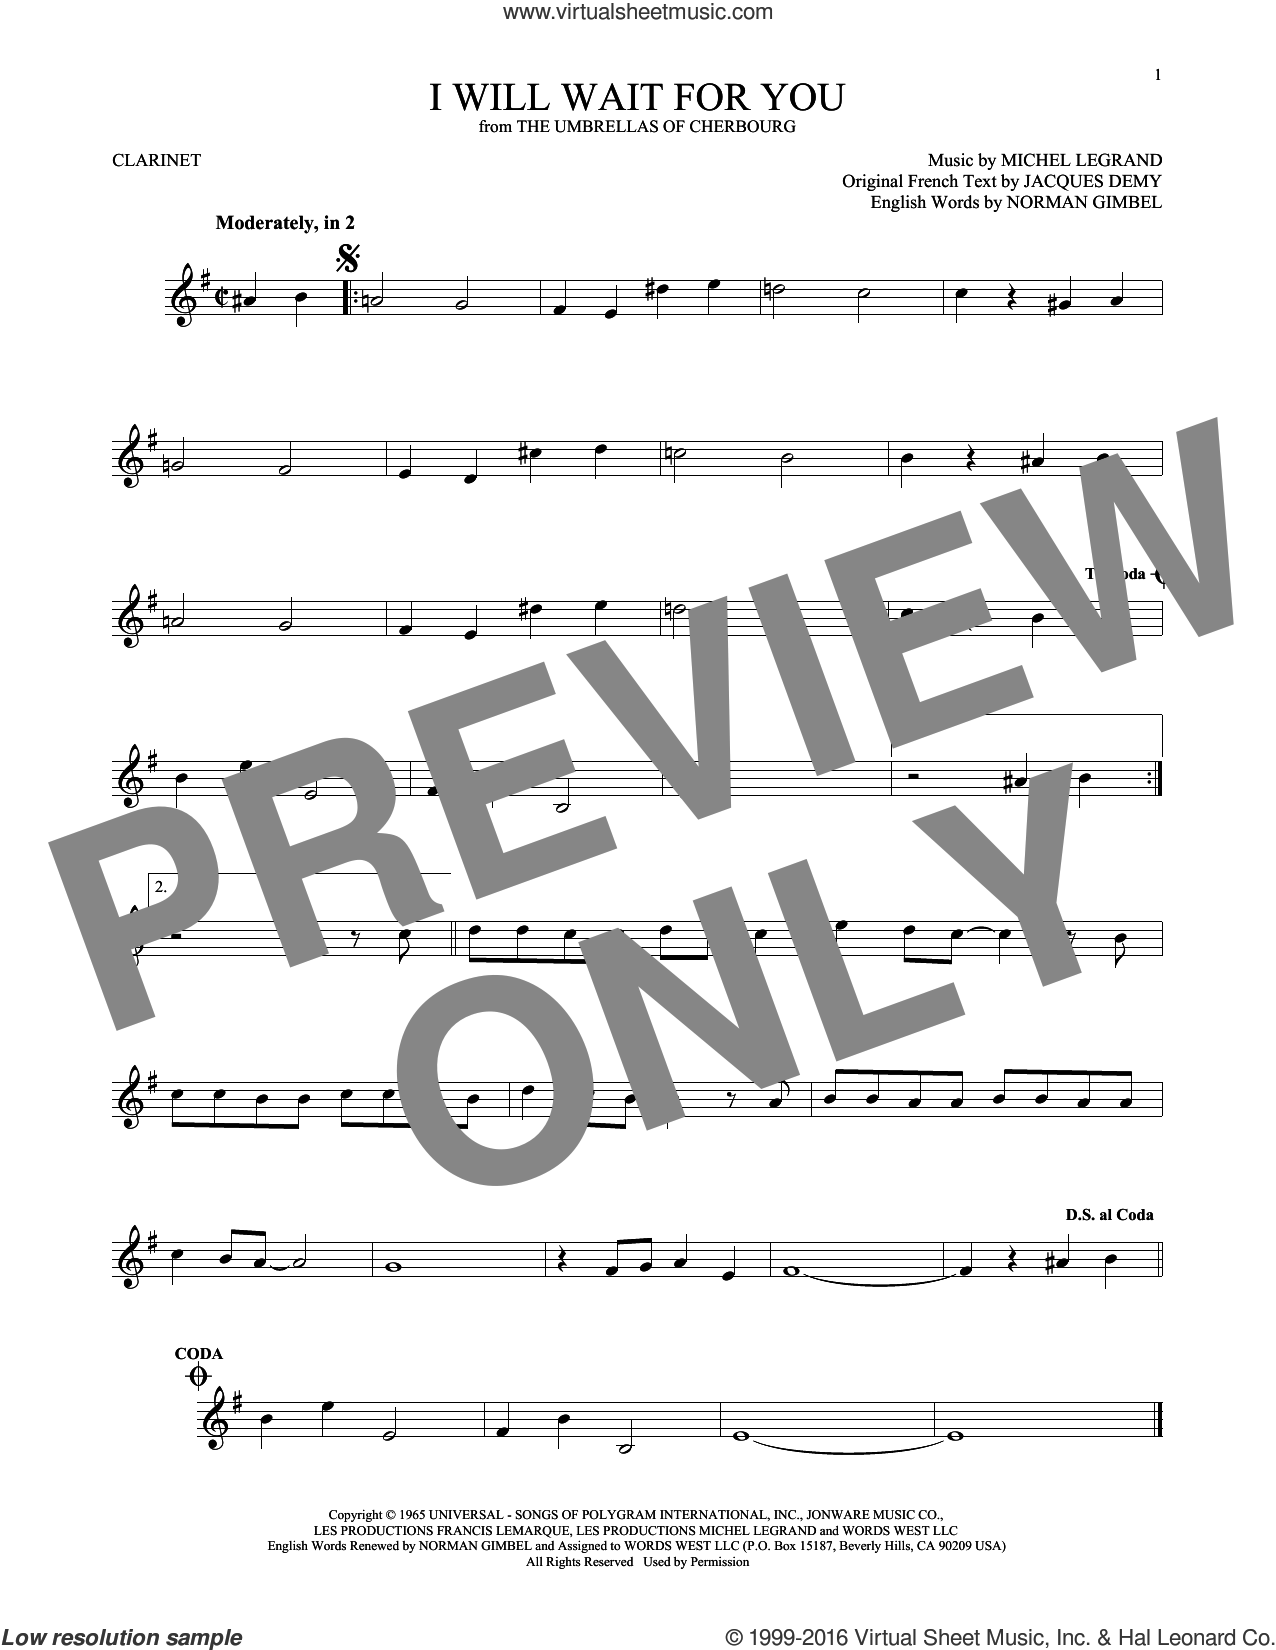 I Will Wait For You sheet music for clarinet solo by Norman Gimbel, Jacques Demy and Michel Legrand. Score Image Preview.